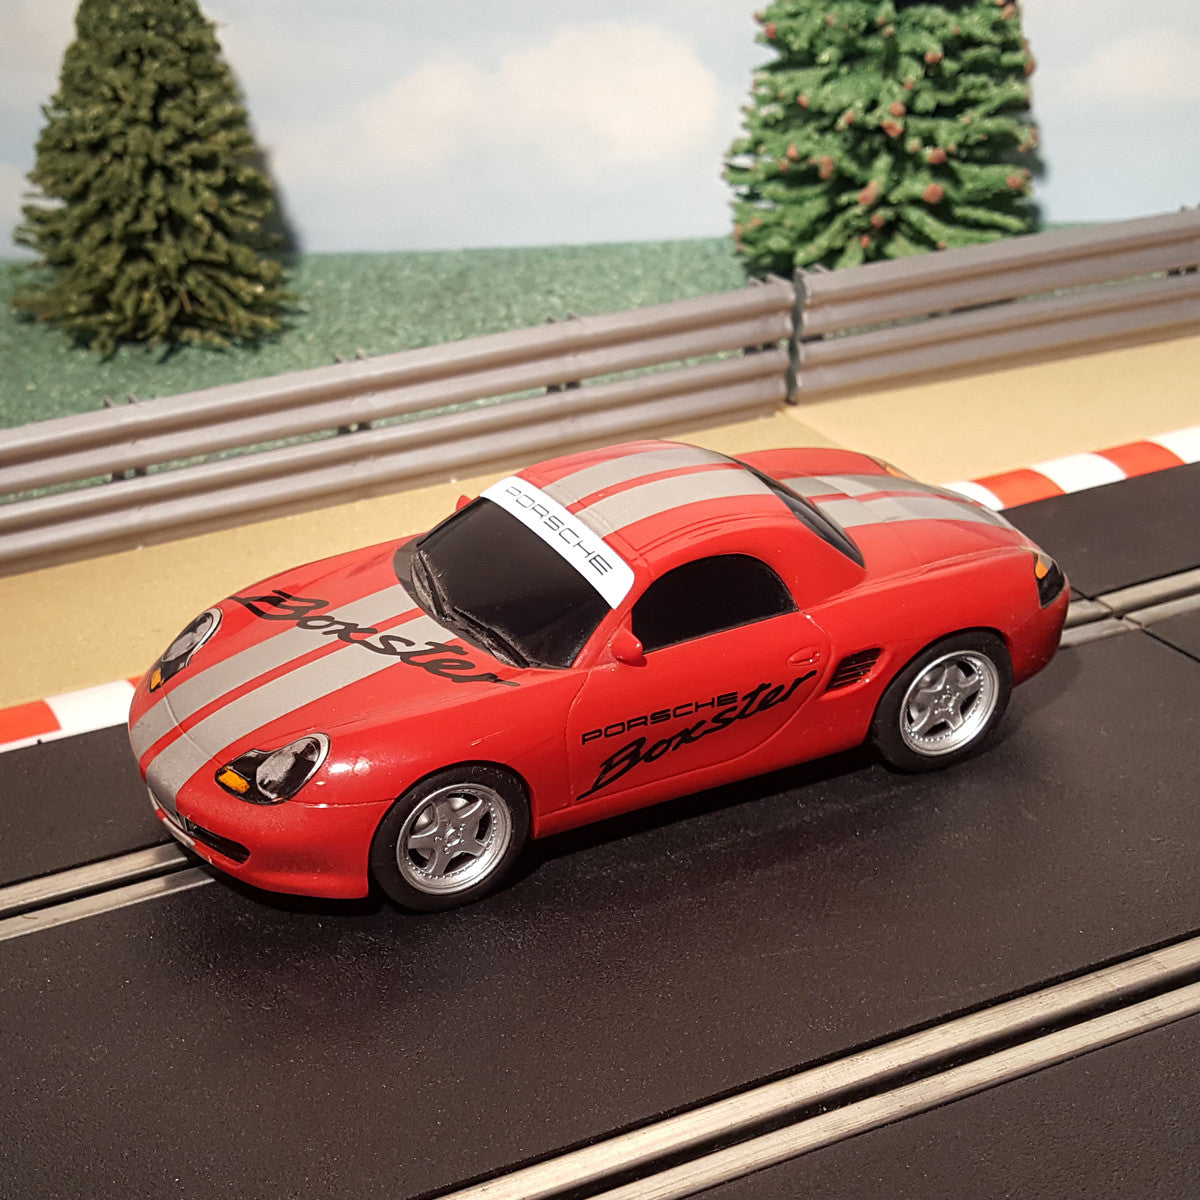 Scalextric 1 32 Car Red Porsche Boxster Action Slot Racing